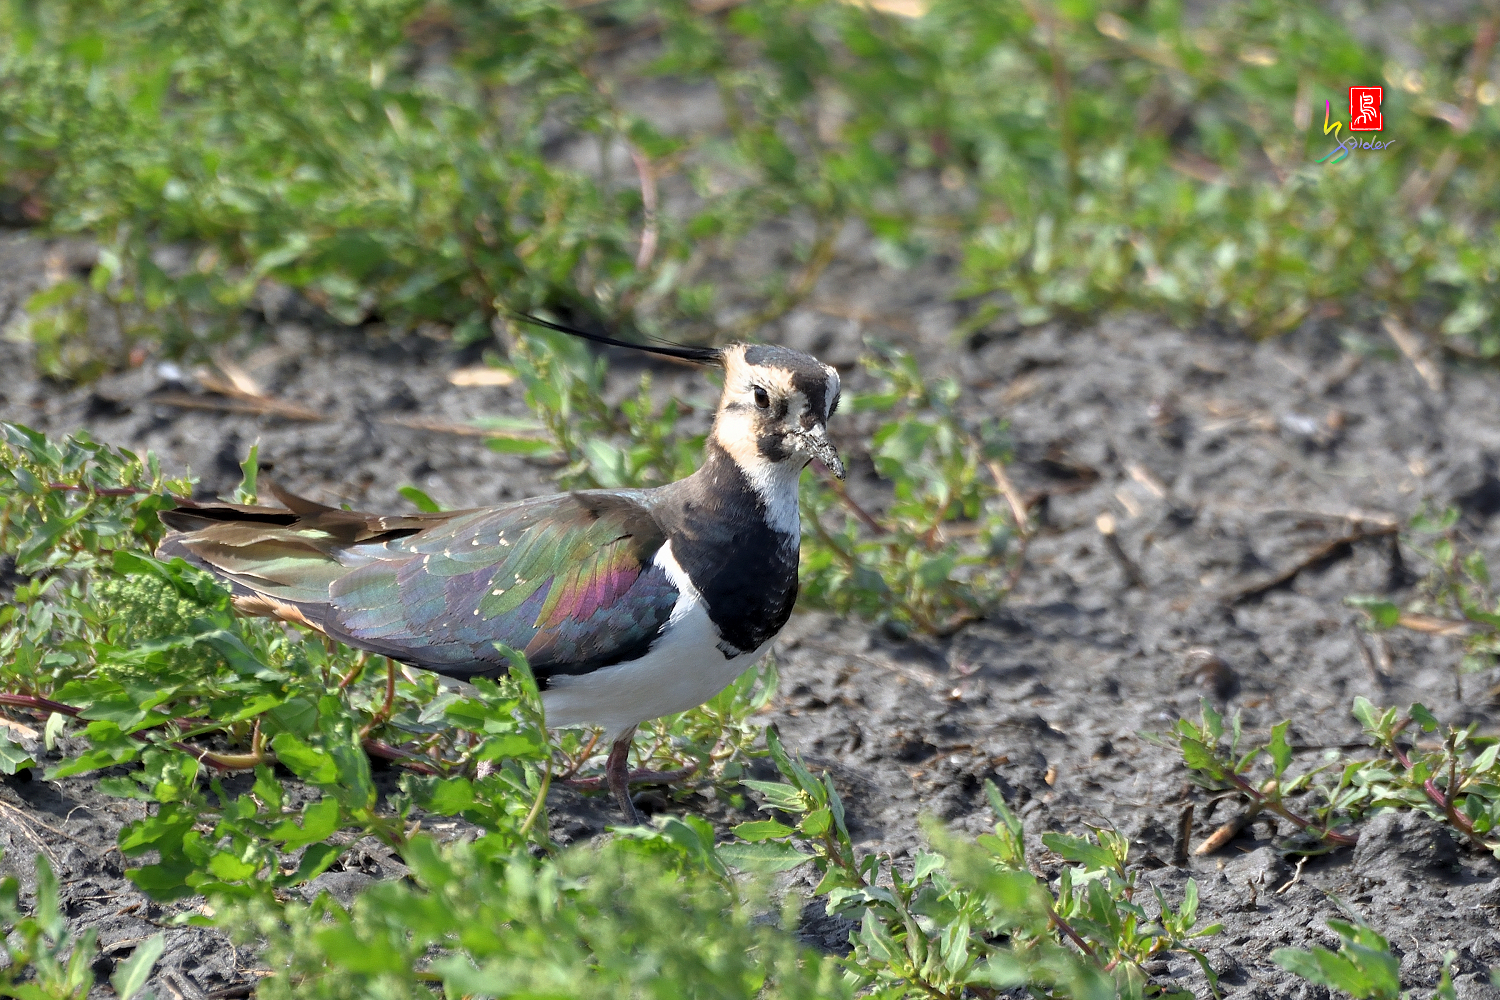 Nprthern_Lapwing_7200